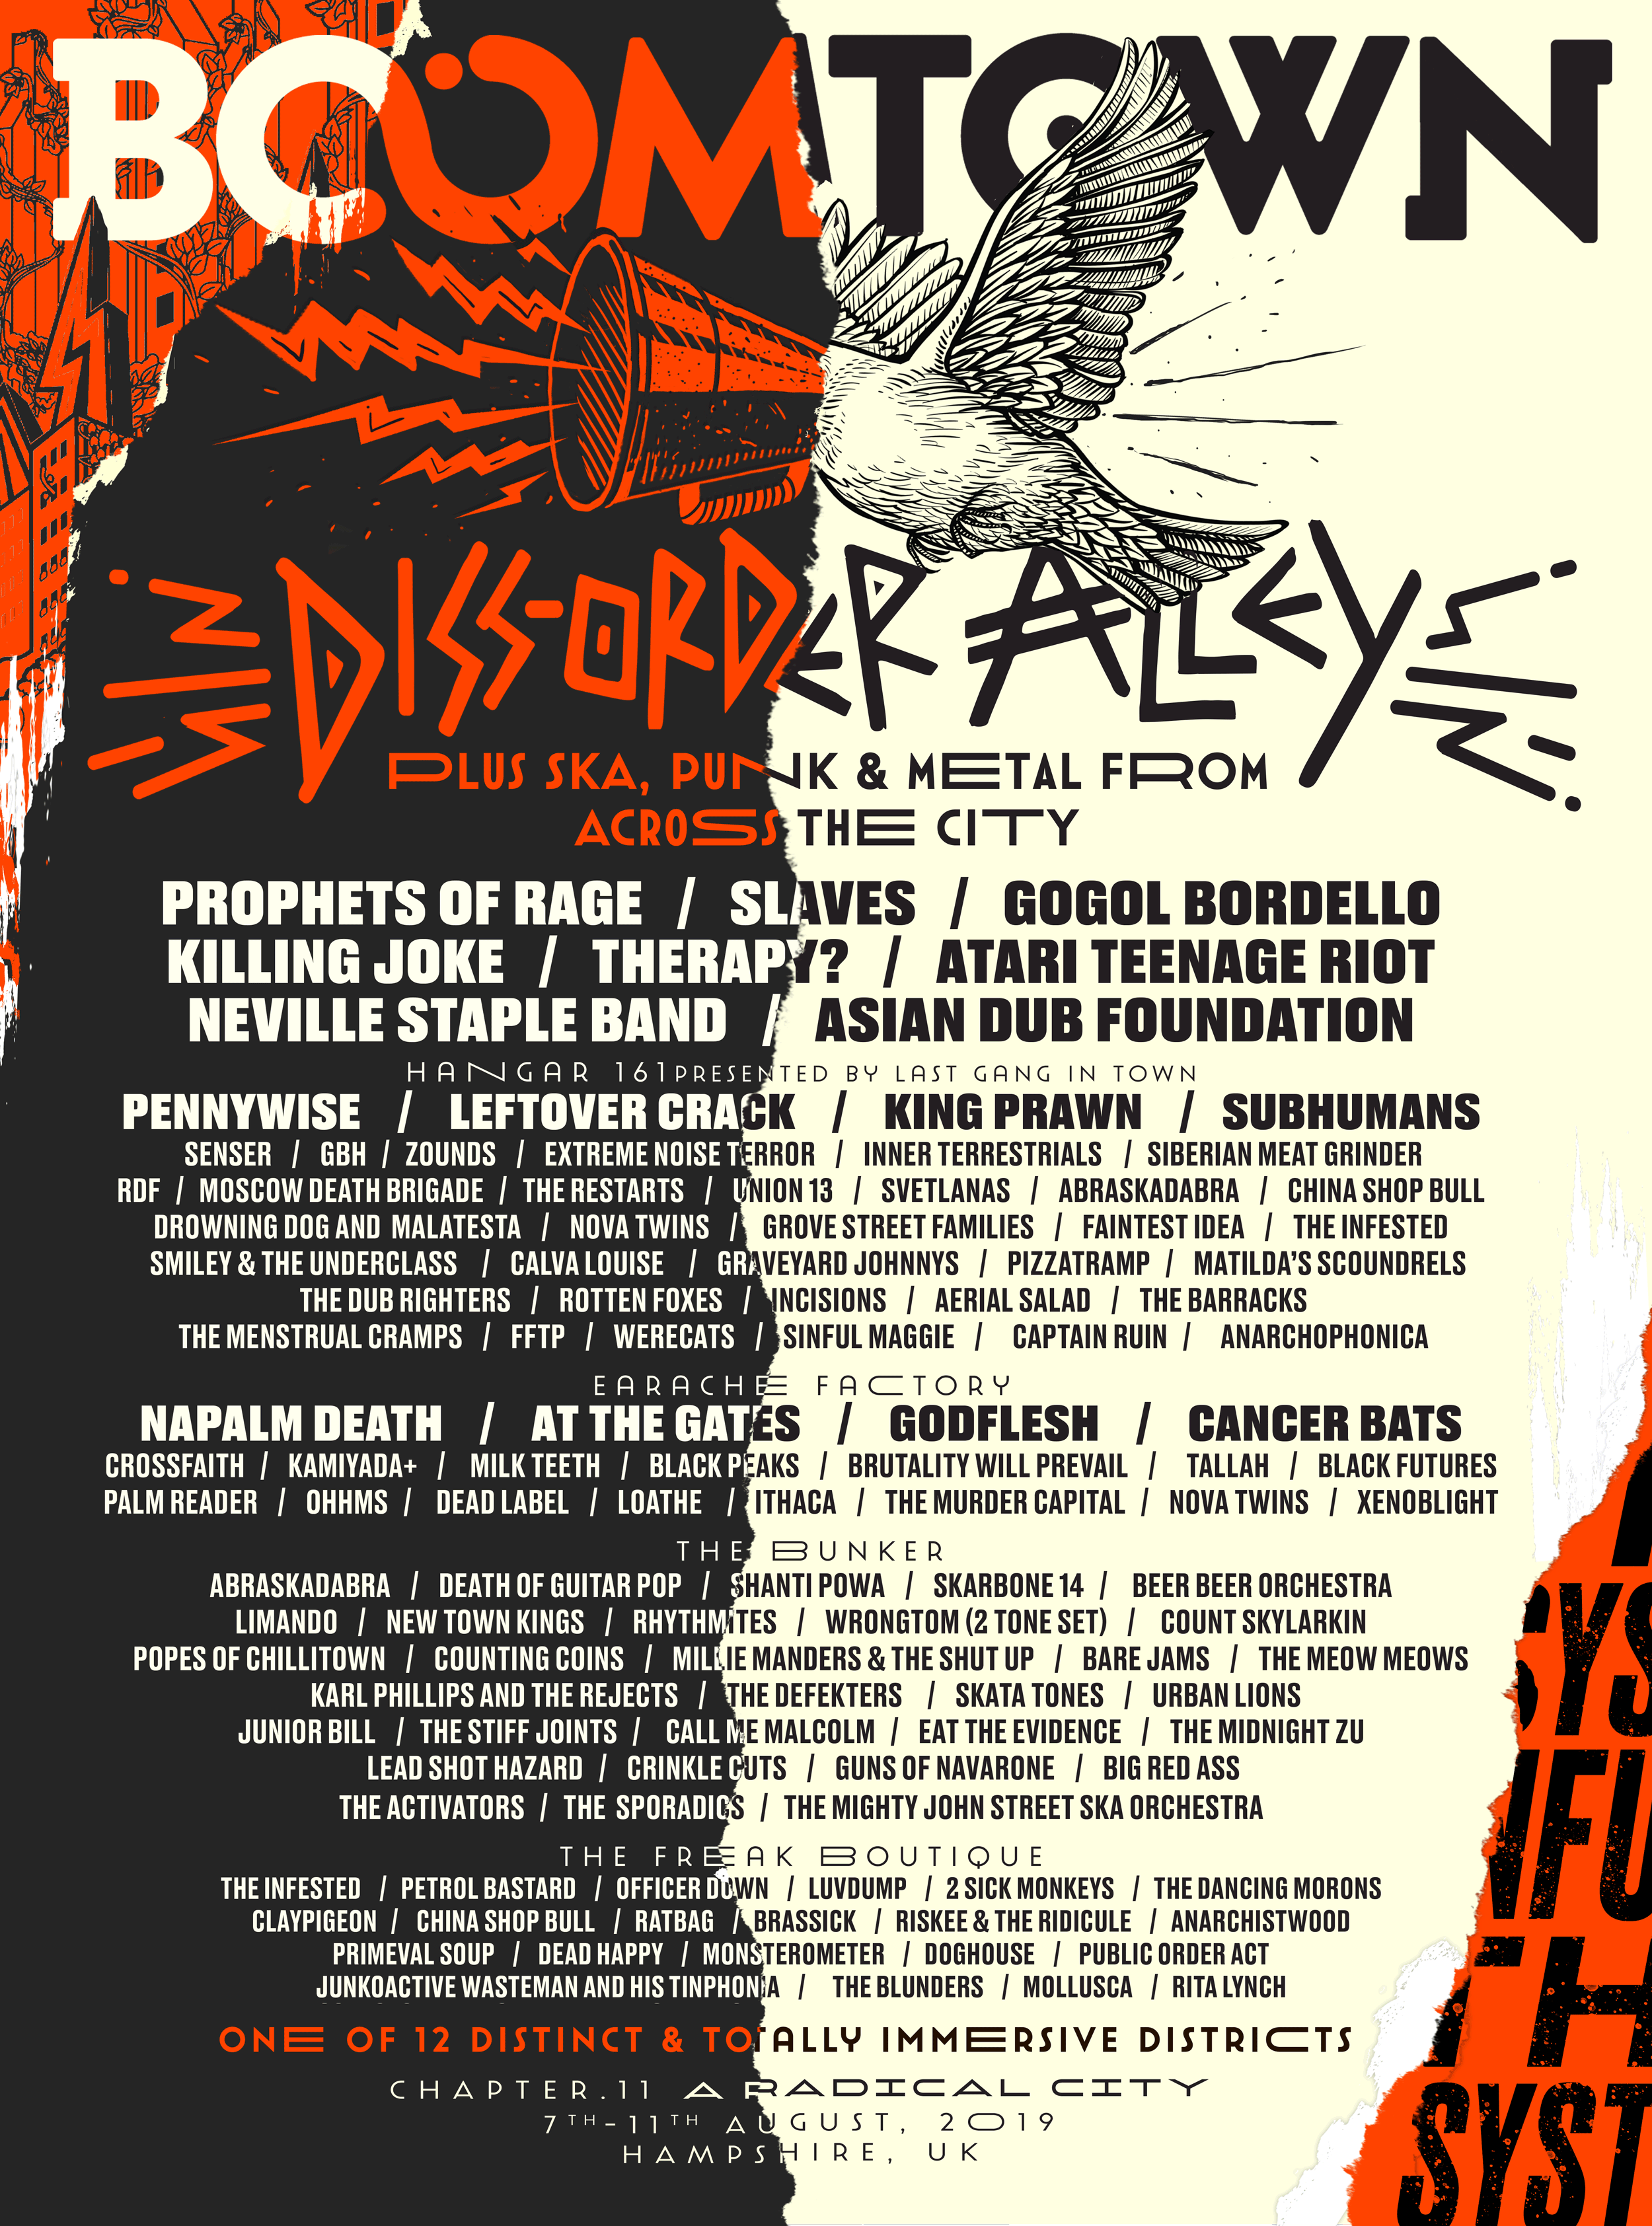 DISTRICT ANNOUNCEMENT: Diss-Order Alley